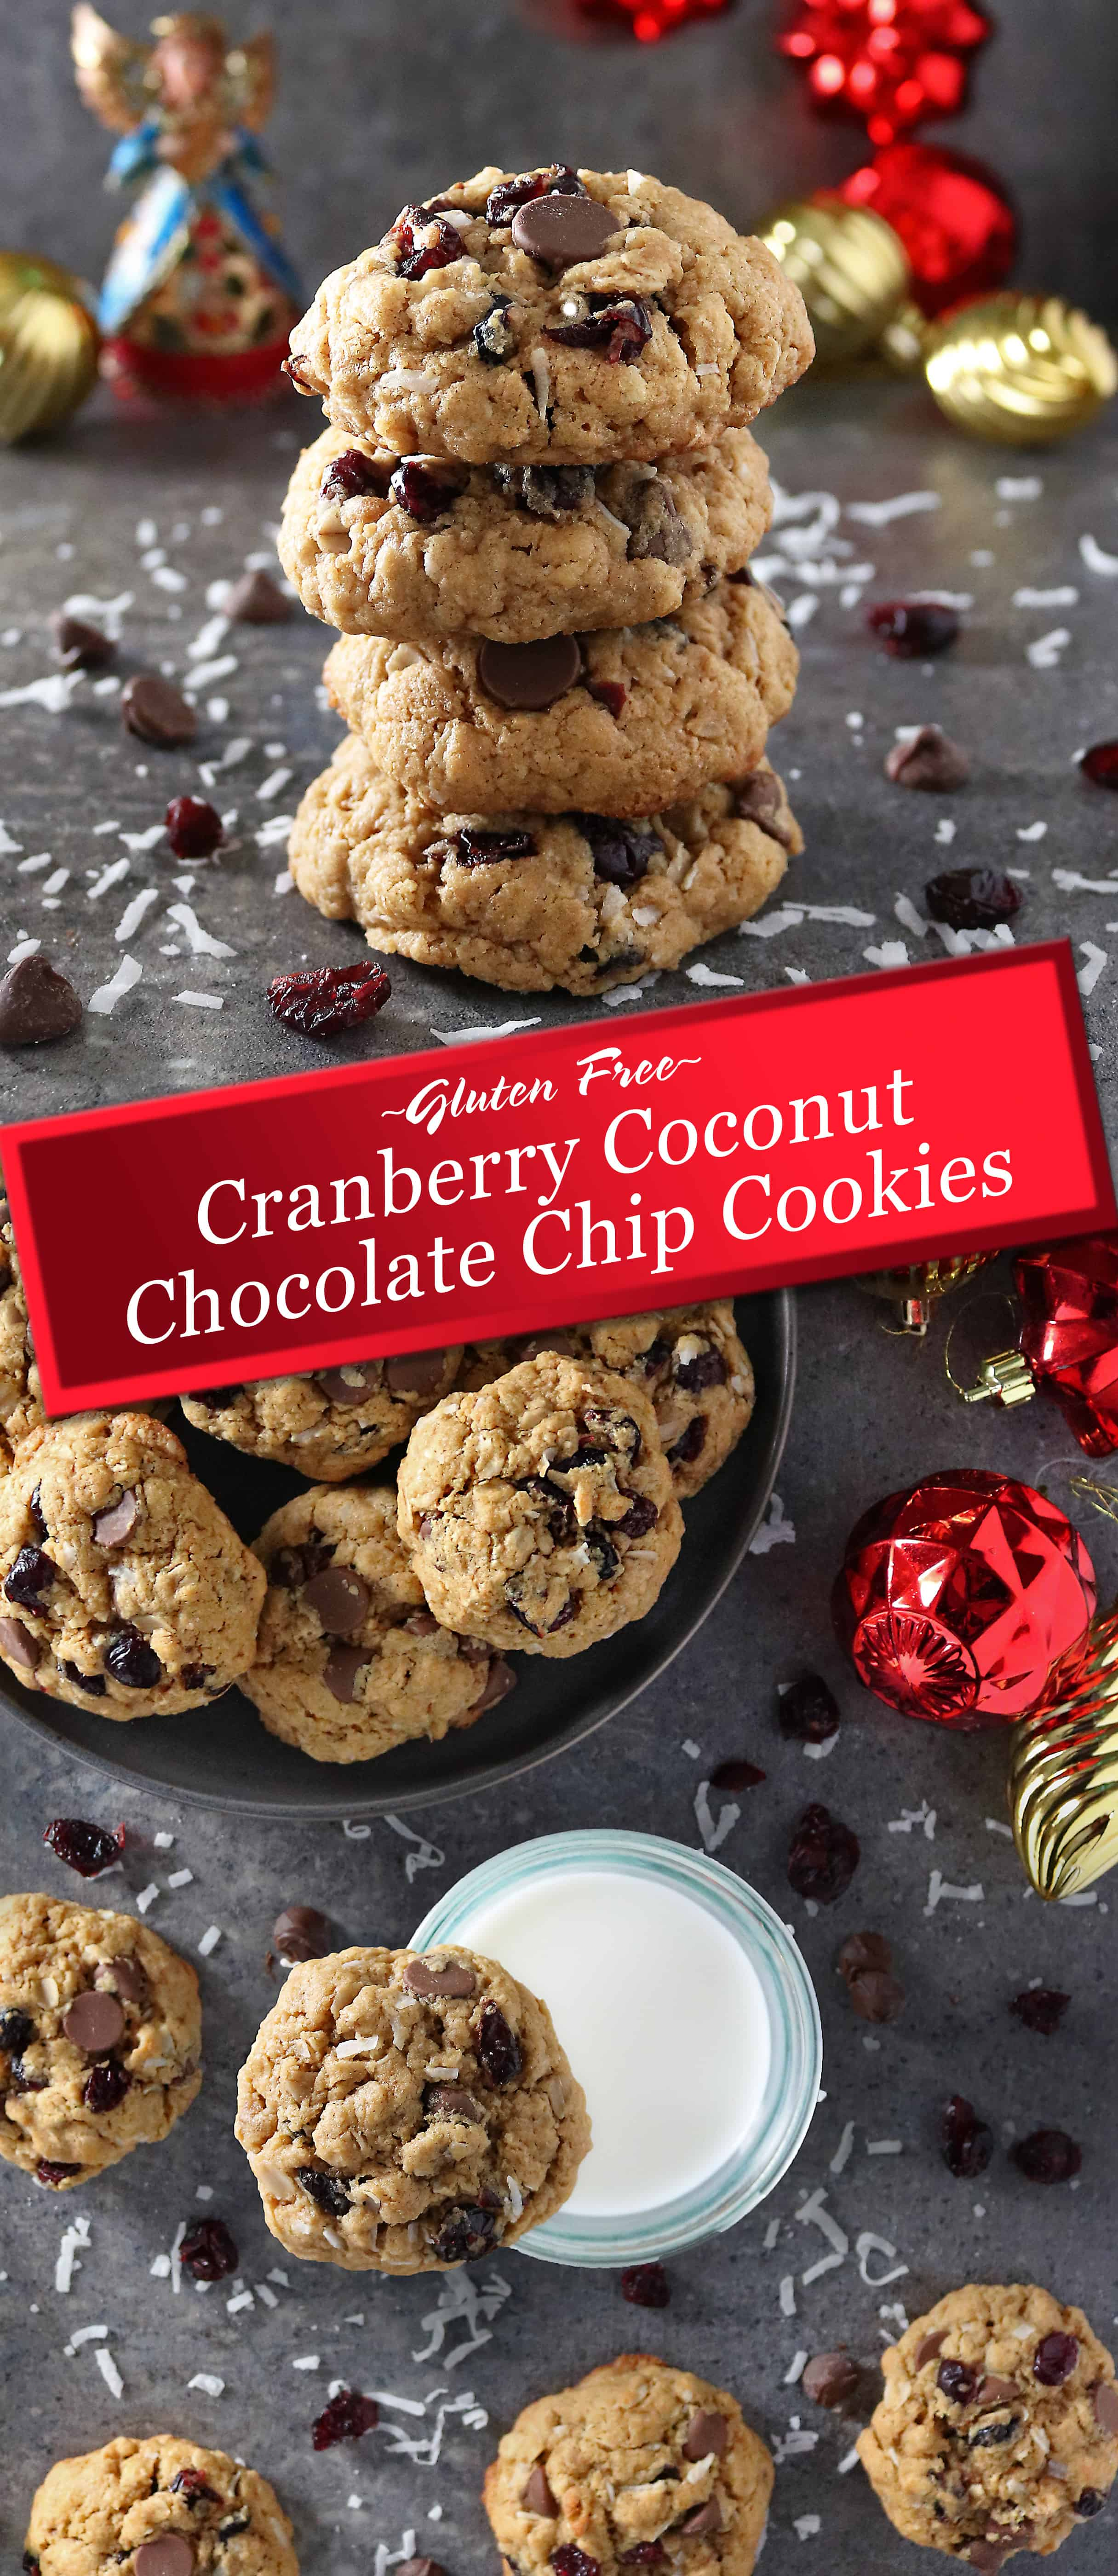 Soft, gloriously thick and scrumptious, it's so hard to stop at just one of these Gluten Free Cranberry Coconut Chocolate Chip Cookies – they are a delicious yet healthyish treat your family and friends are sure to love.